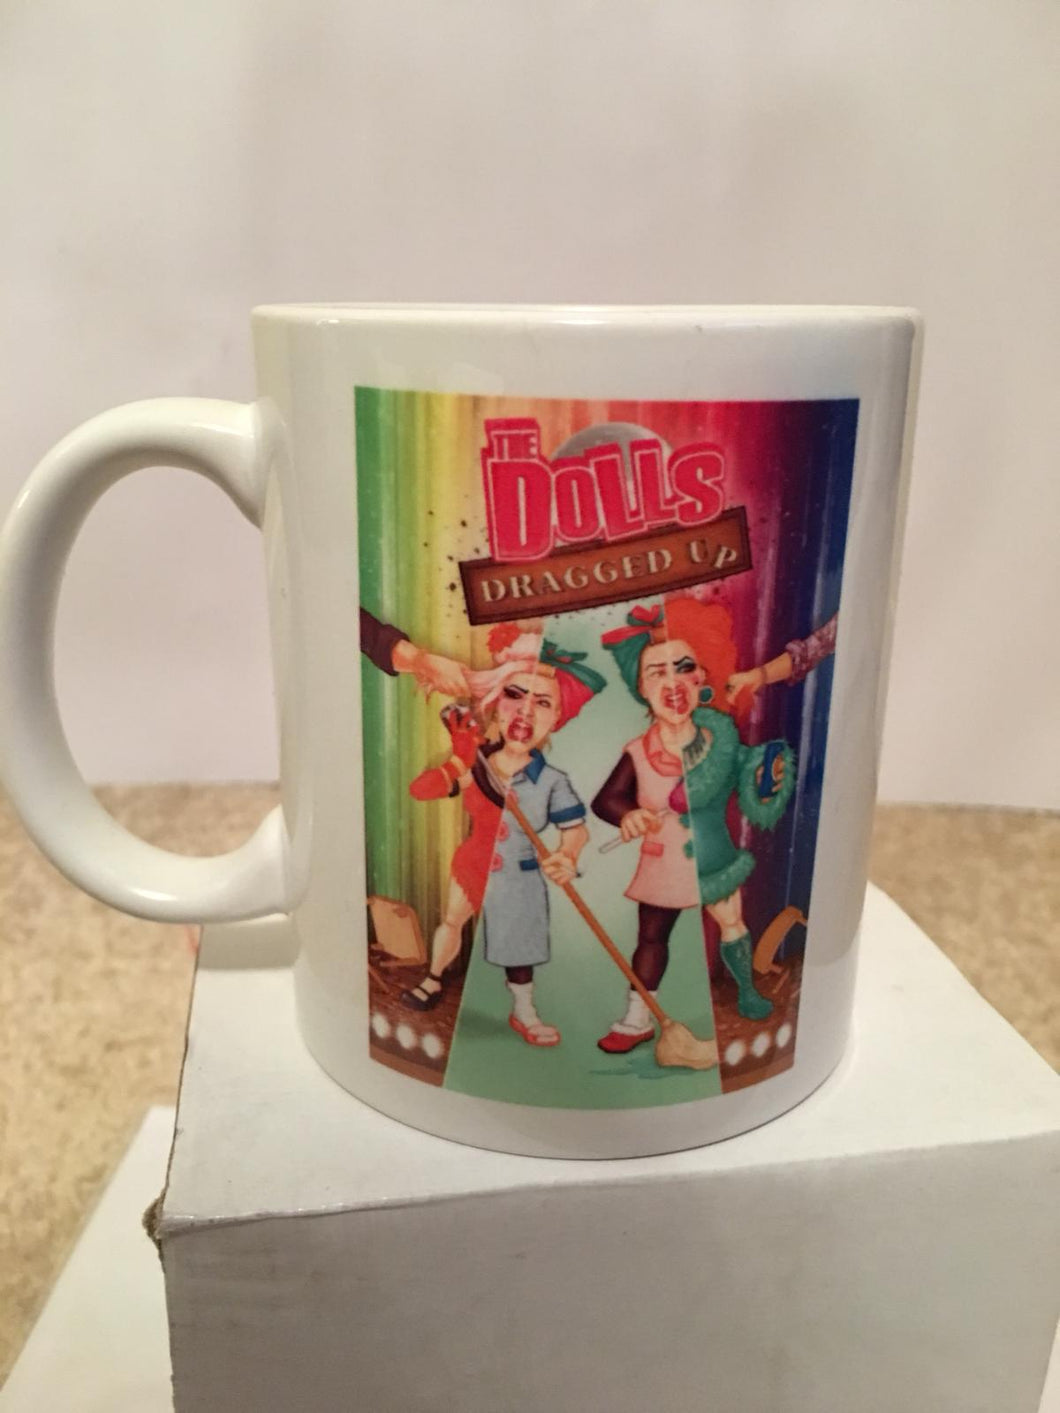 The Dolls: Dragged Up! Mug